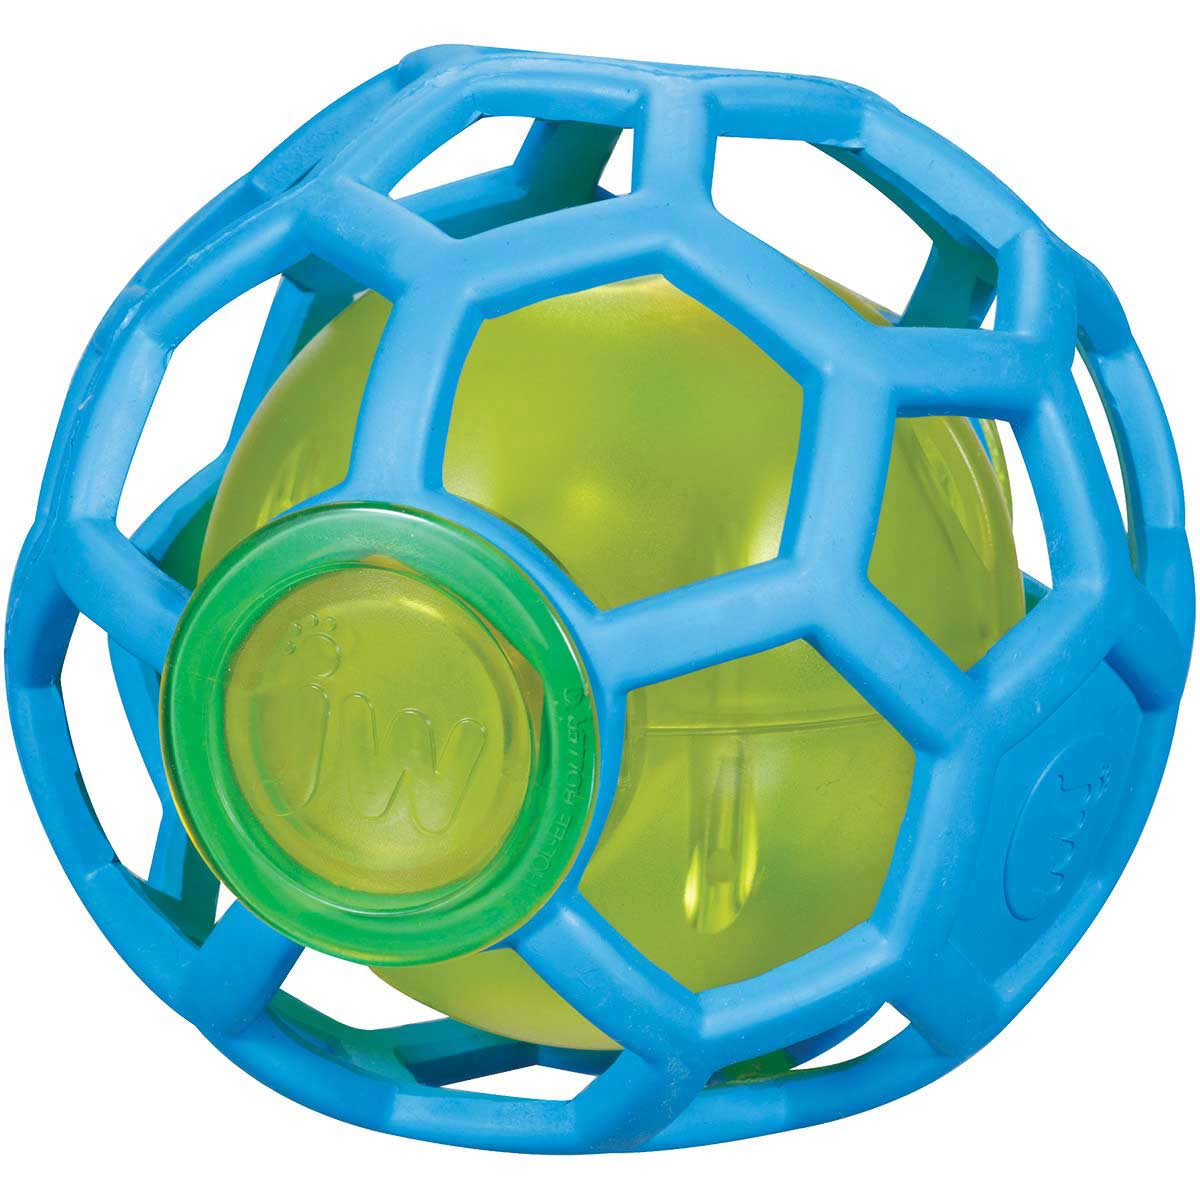 Medium 8 inch JW Hol-ee Treat Ball for Dogs